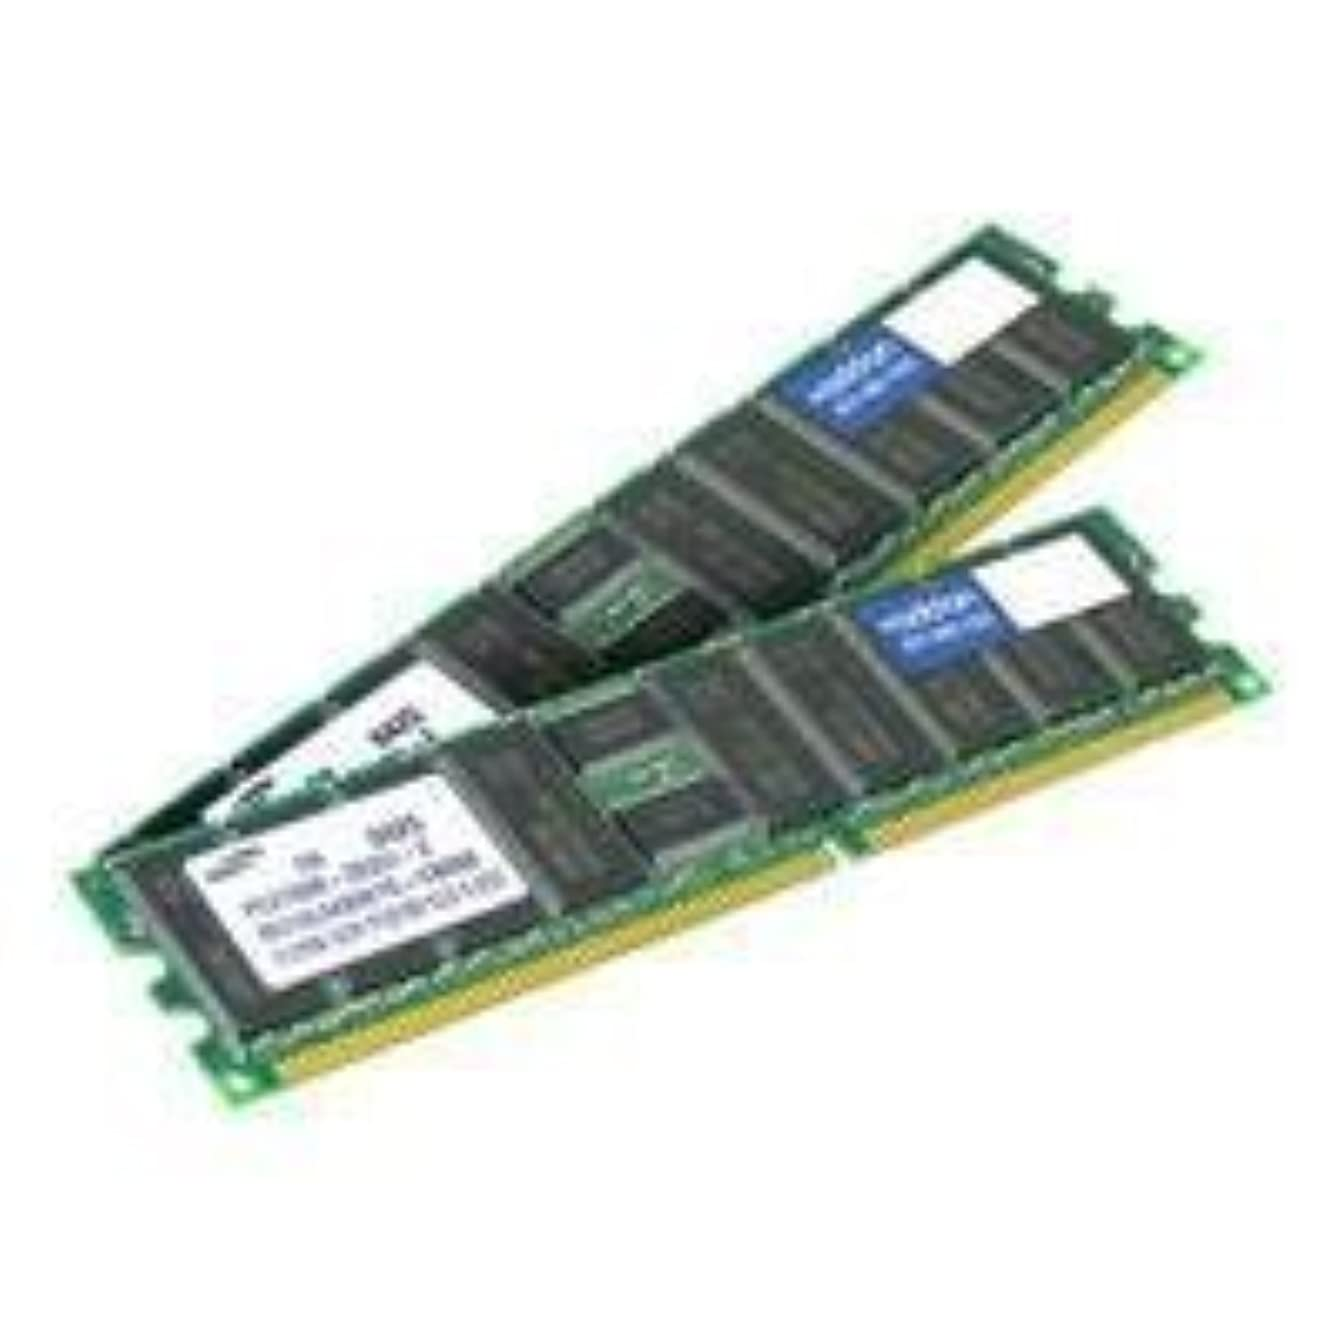 リンス瀬戸際スタジアム16GB KIT 2X8G DDR2-667MHZ FBD HP KTH-XW667/16G FACTORY ORIGINAL by ACP-EP [並行輸入品]